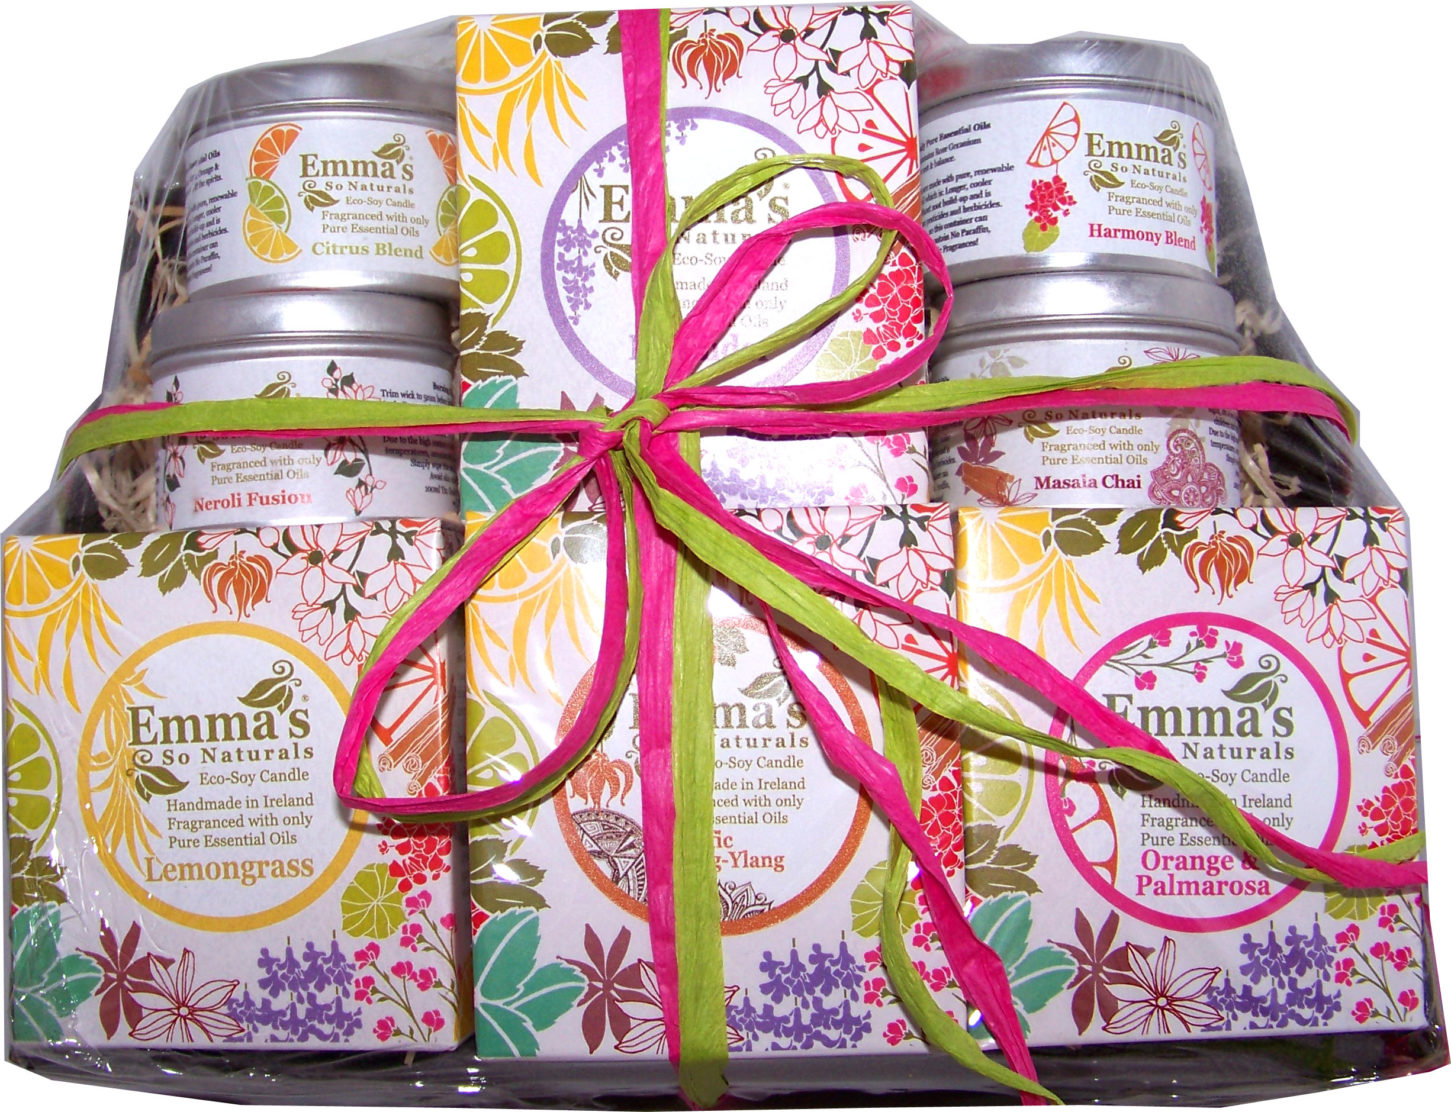 ex-gift-5-8-piece-candle-gift-set-wrapped